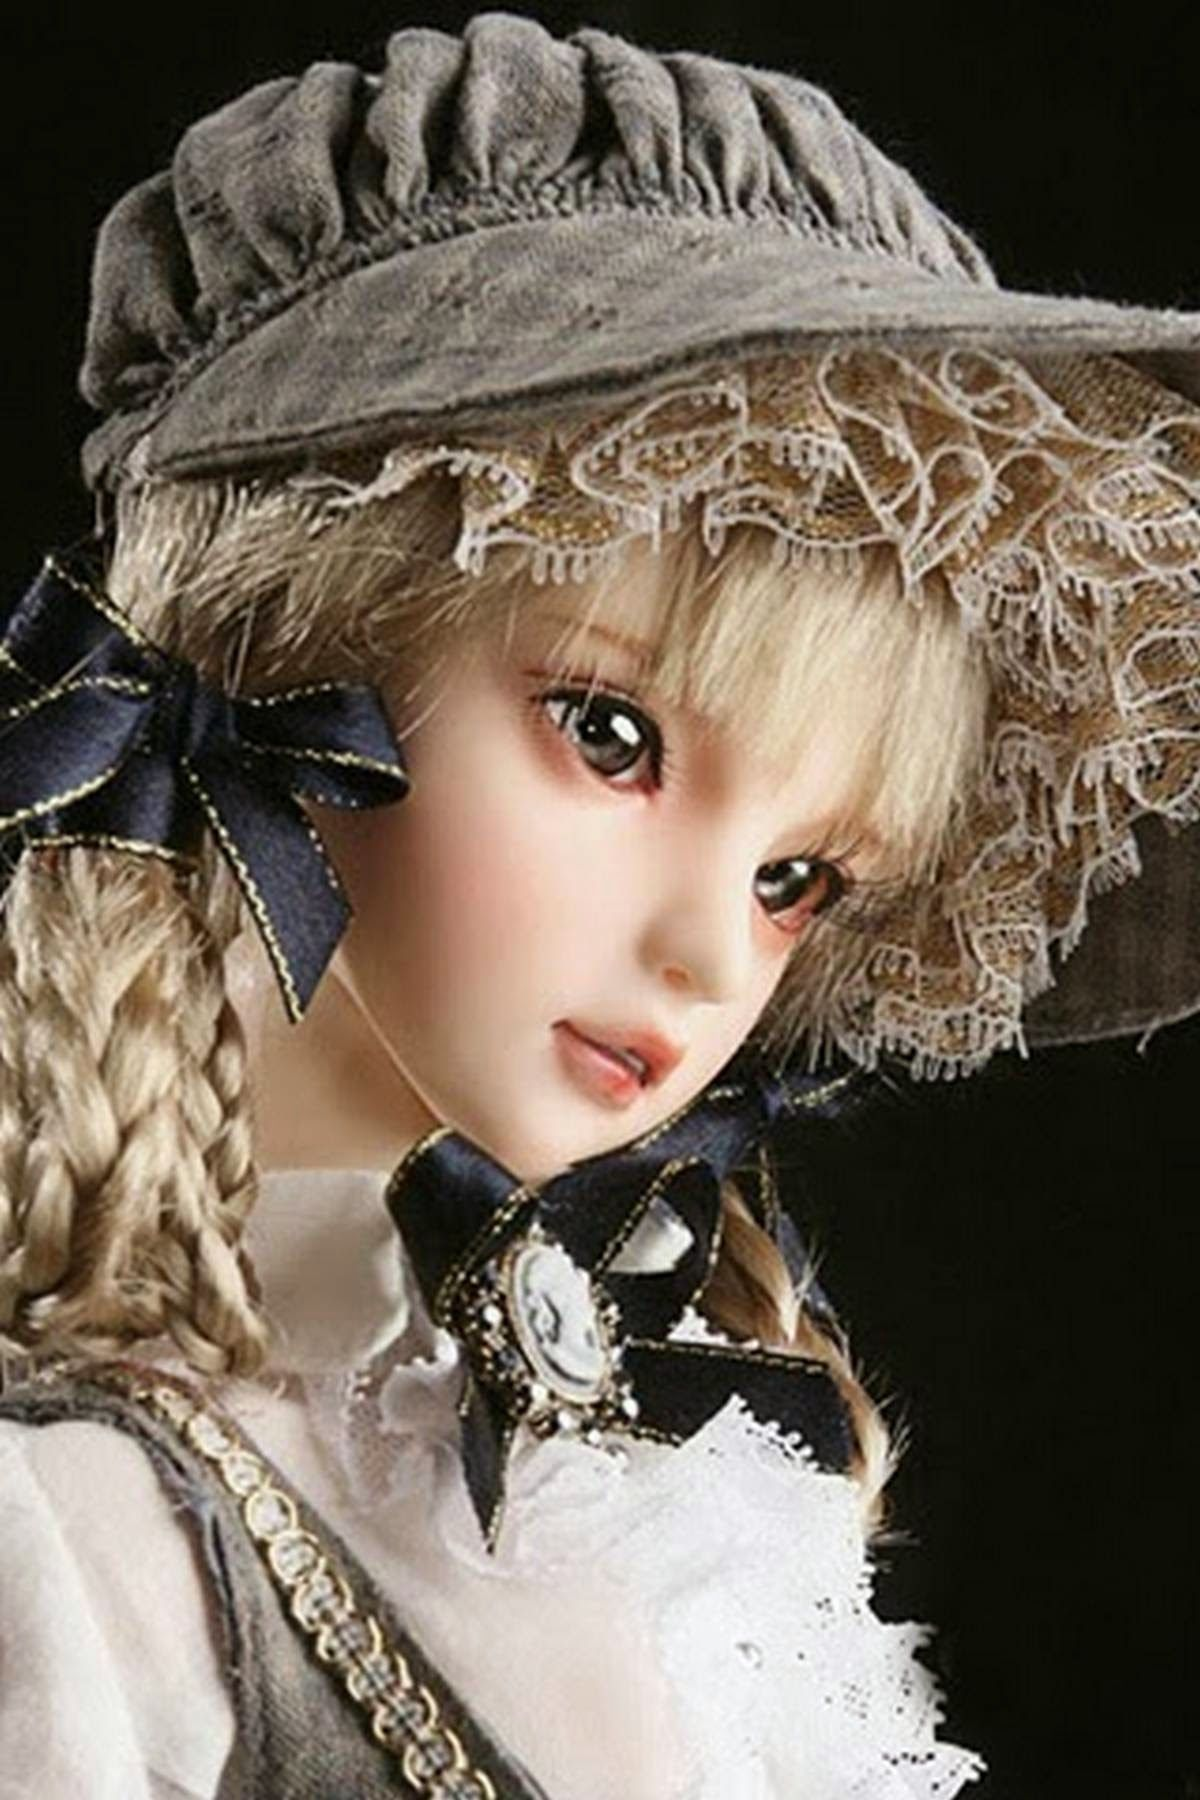 Click here to download in HD Format >> Barbie Doll